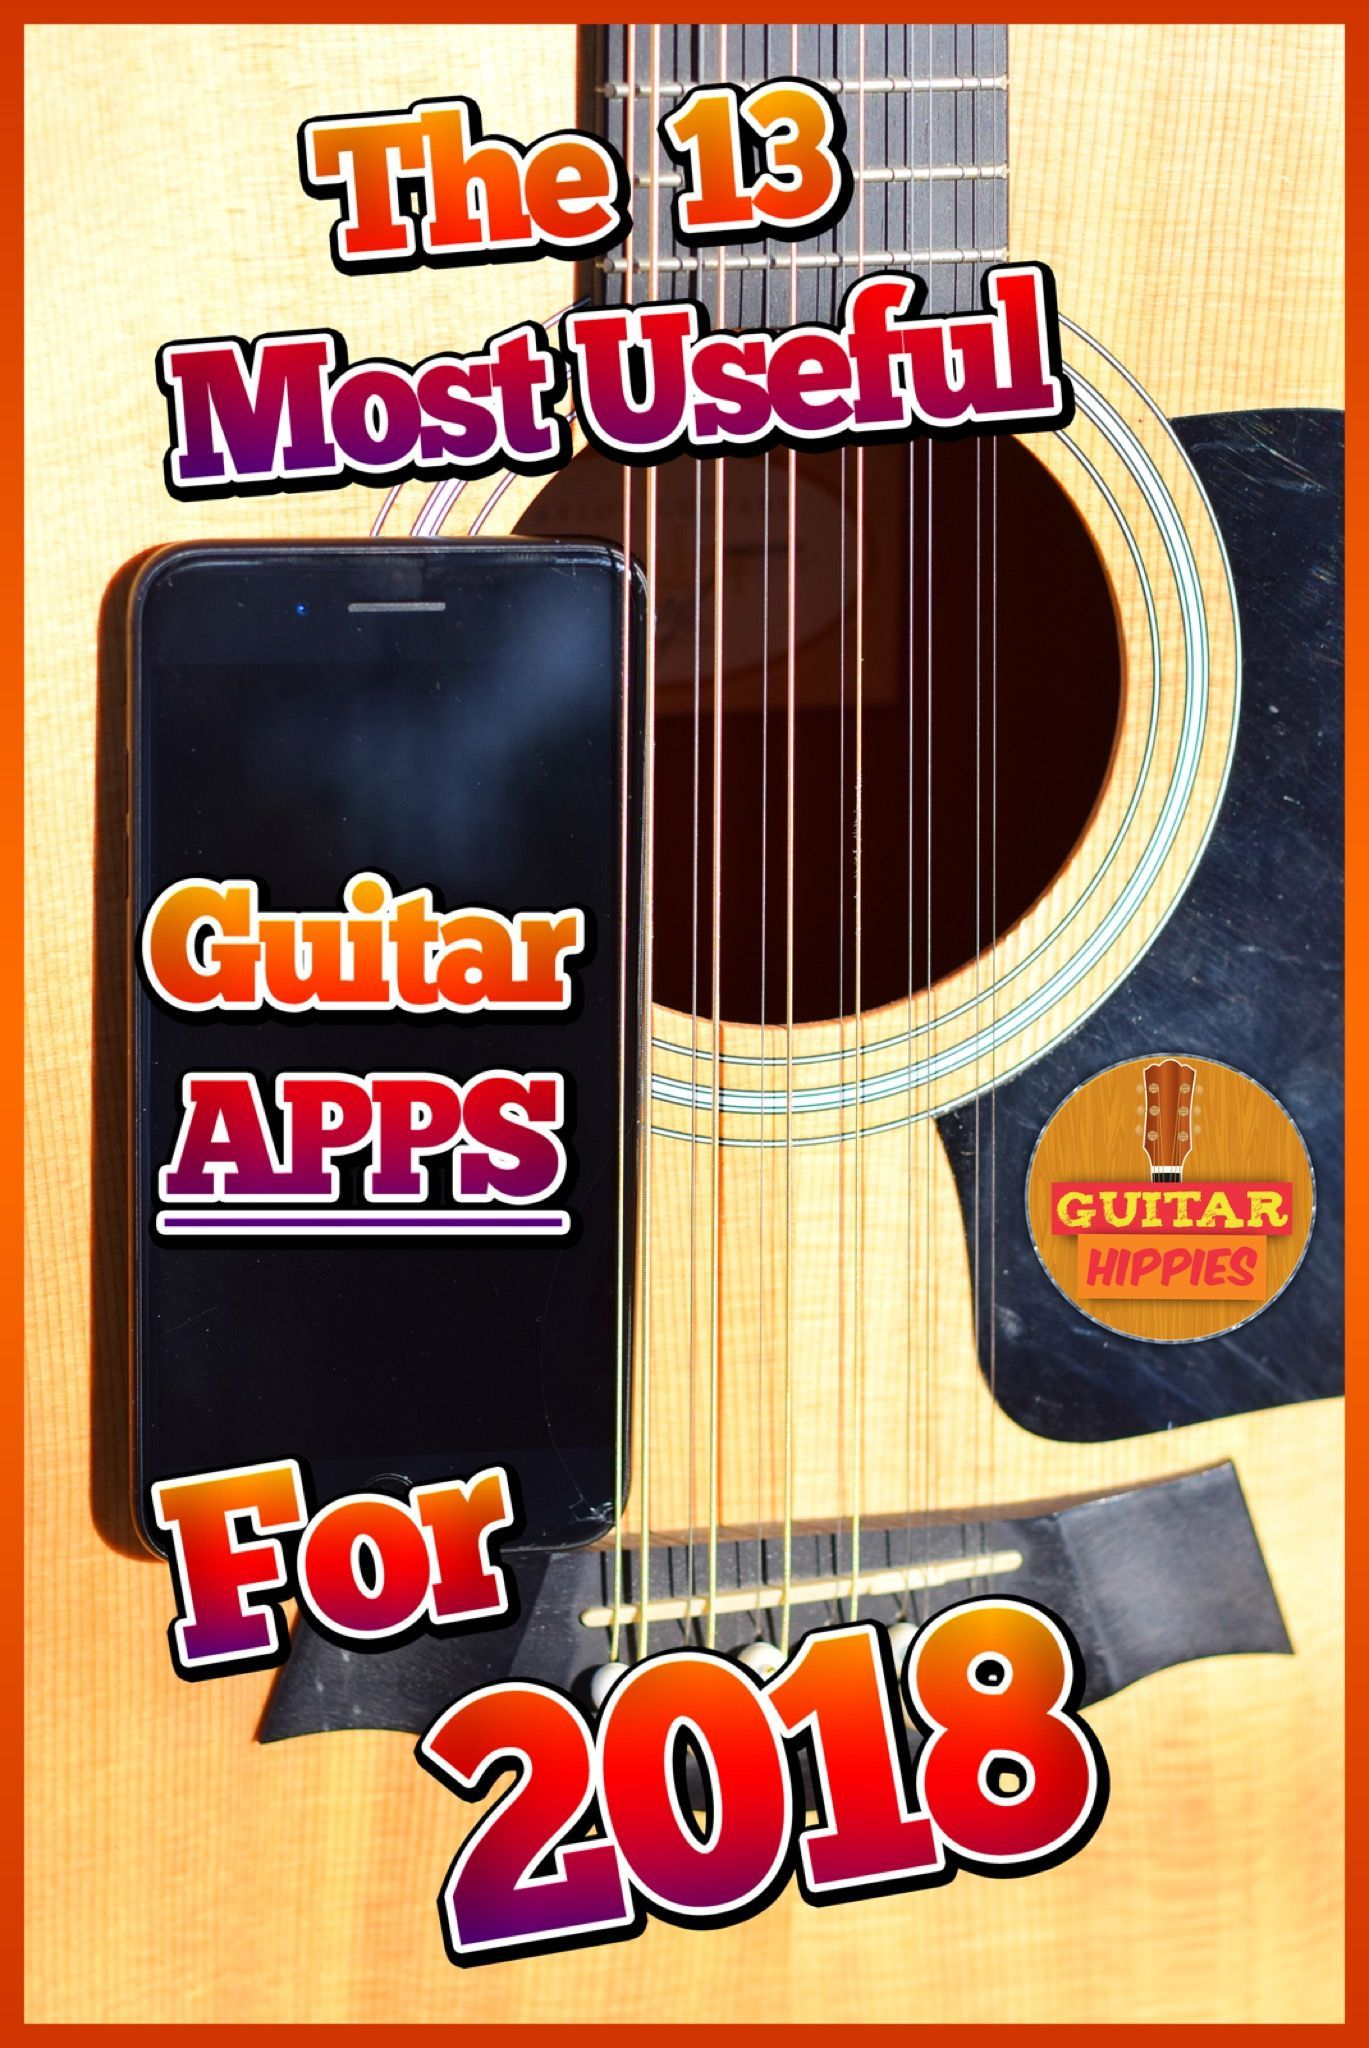 best guitar apps Learn guitar, Guitar app, Guitar for